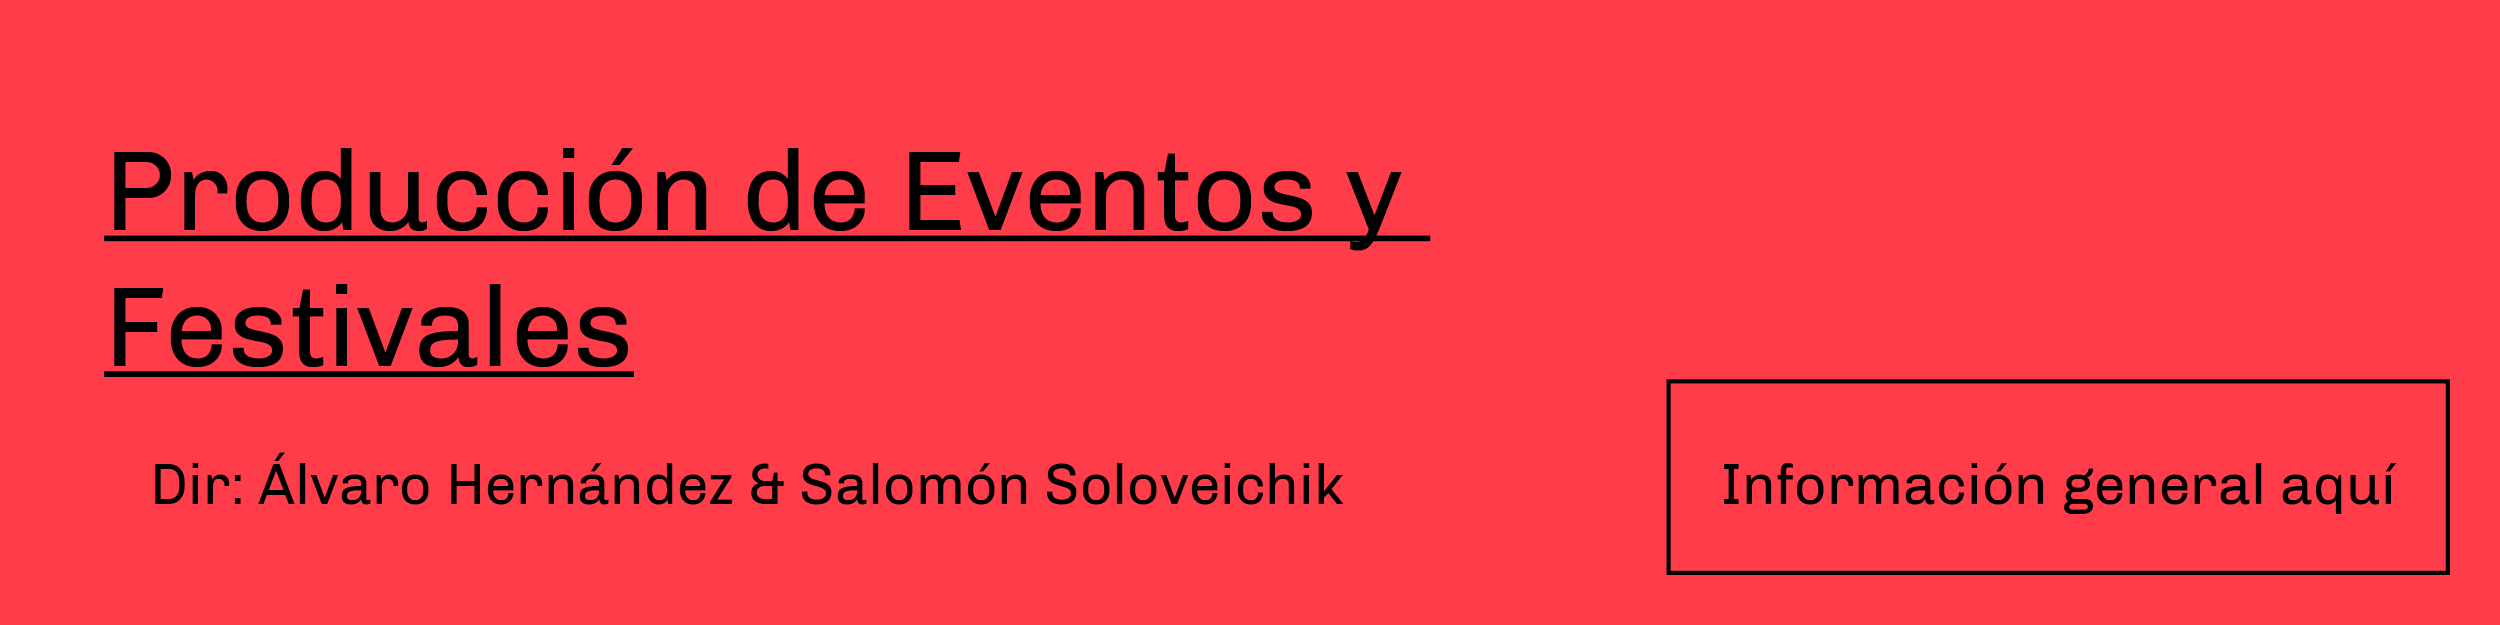 C3 Arco Web Banners Eventos.png